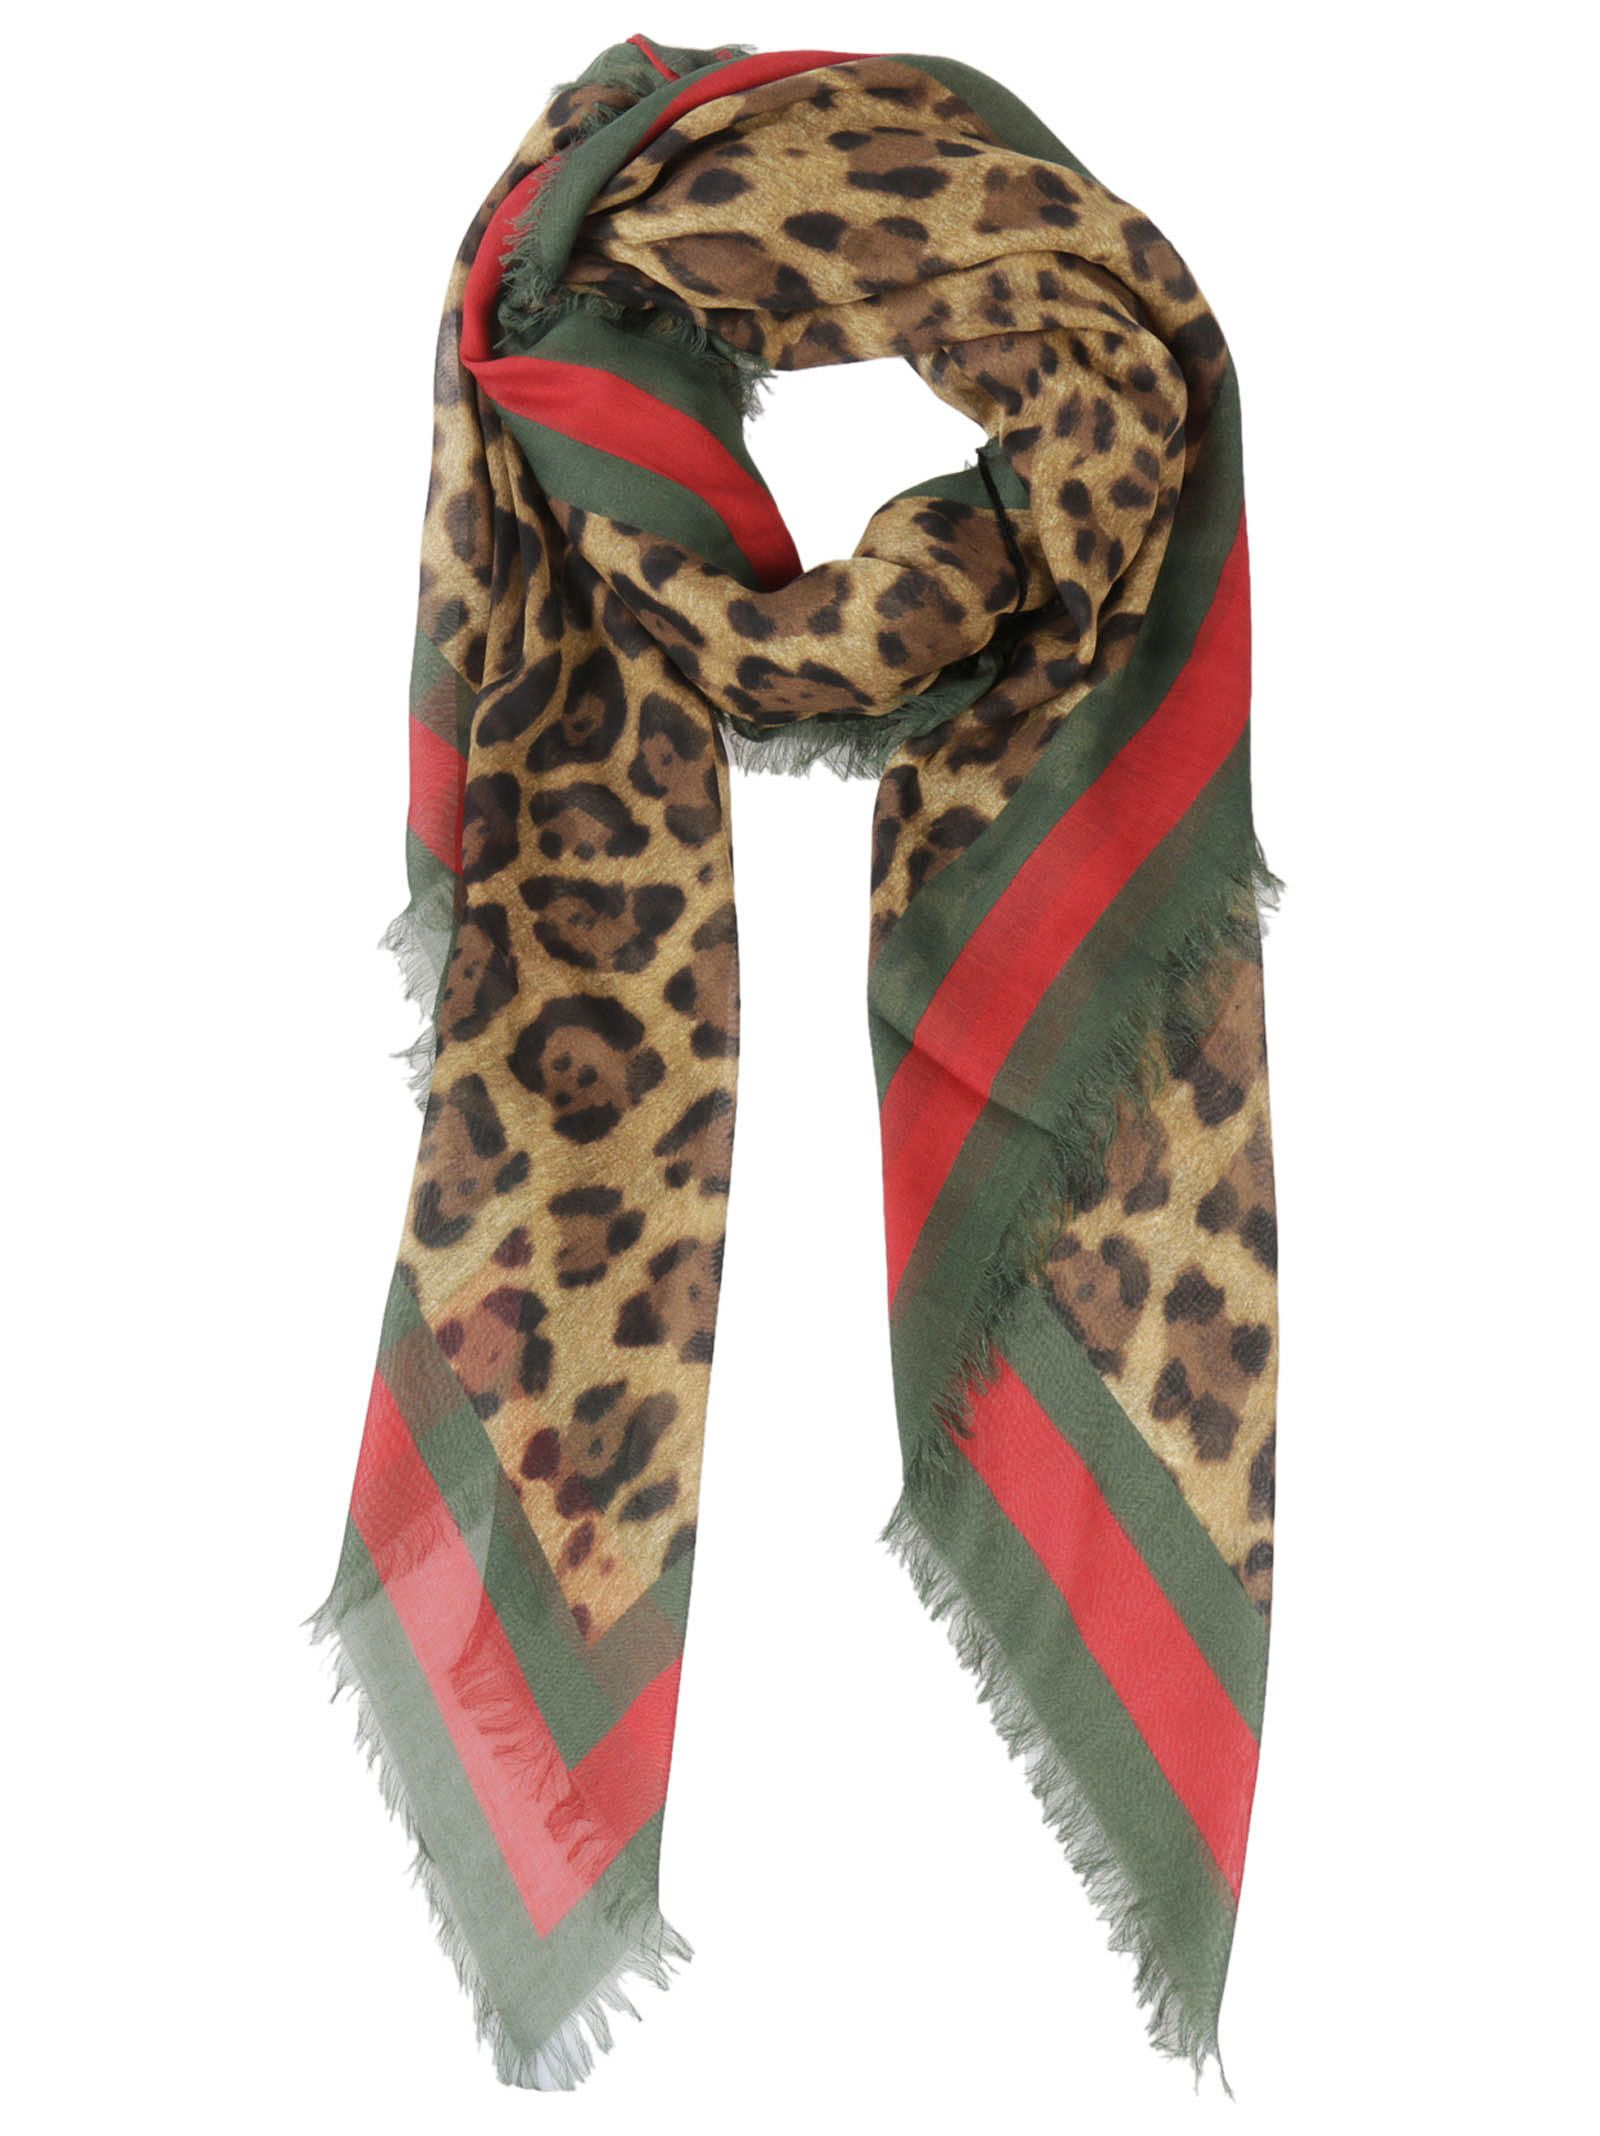 Awesome! Best price in the market for Gucci Leopard Scarf